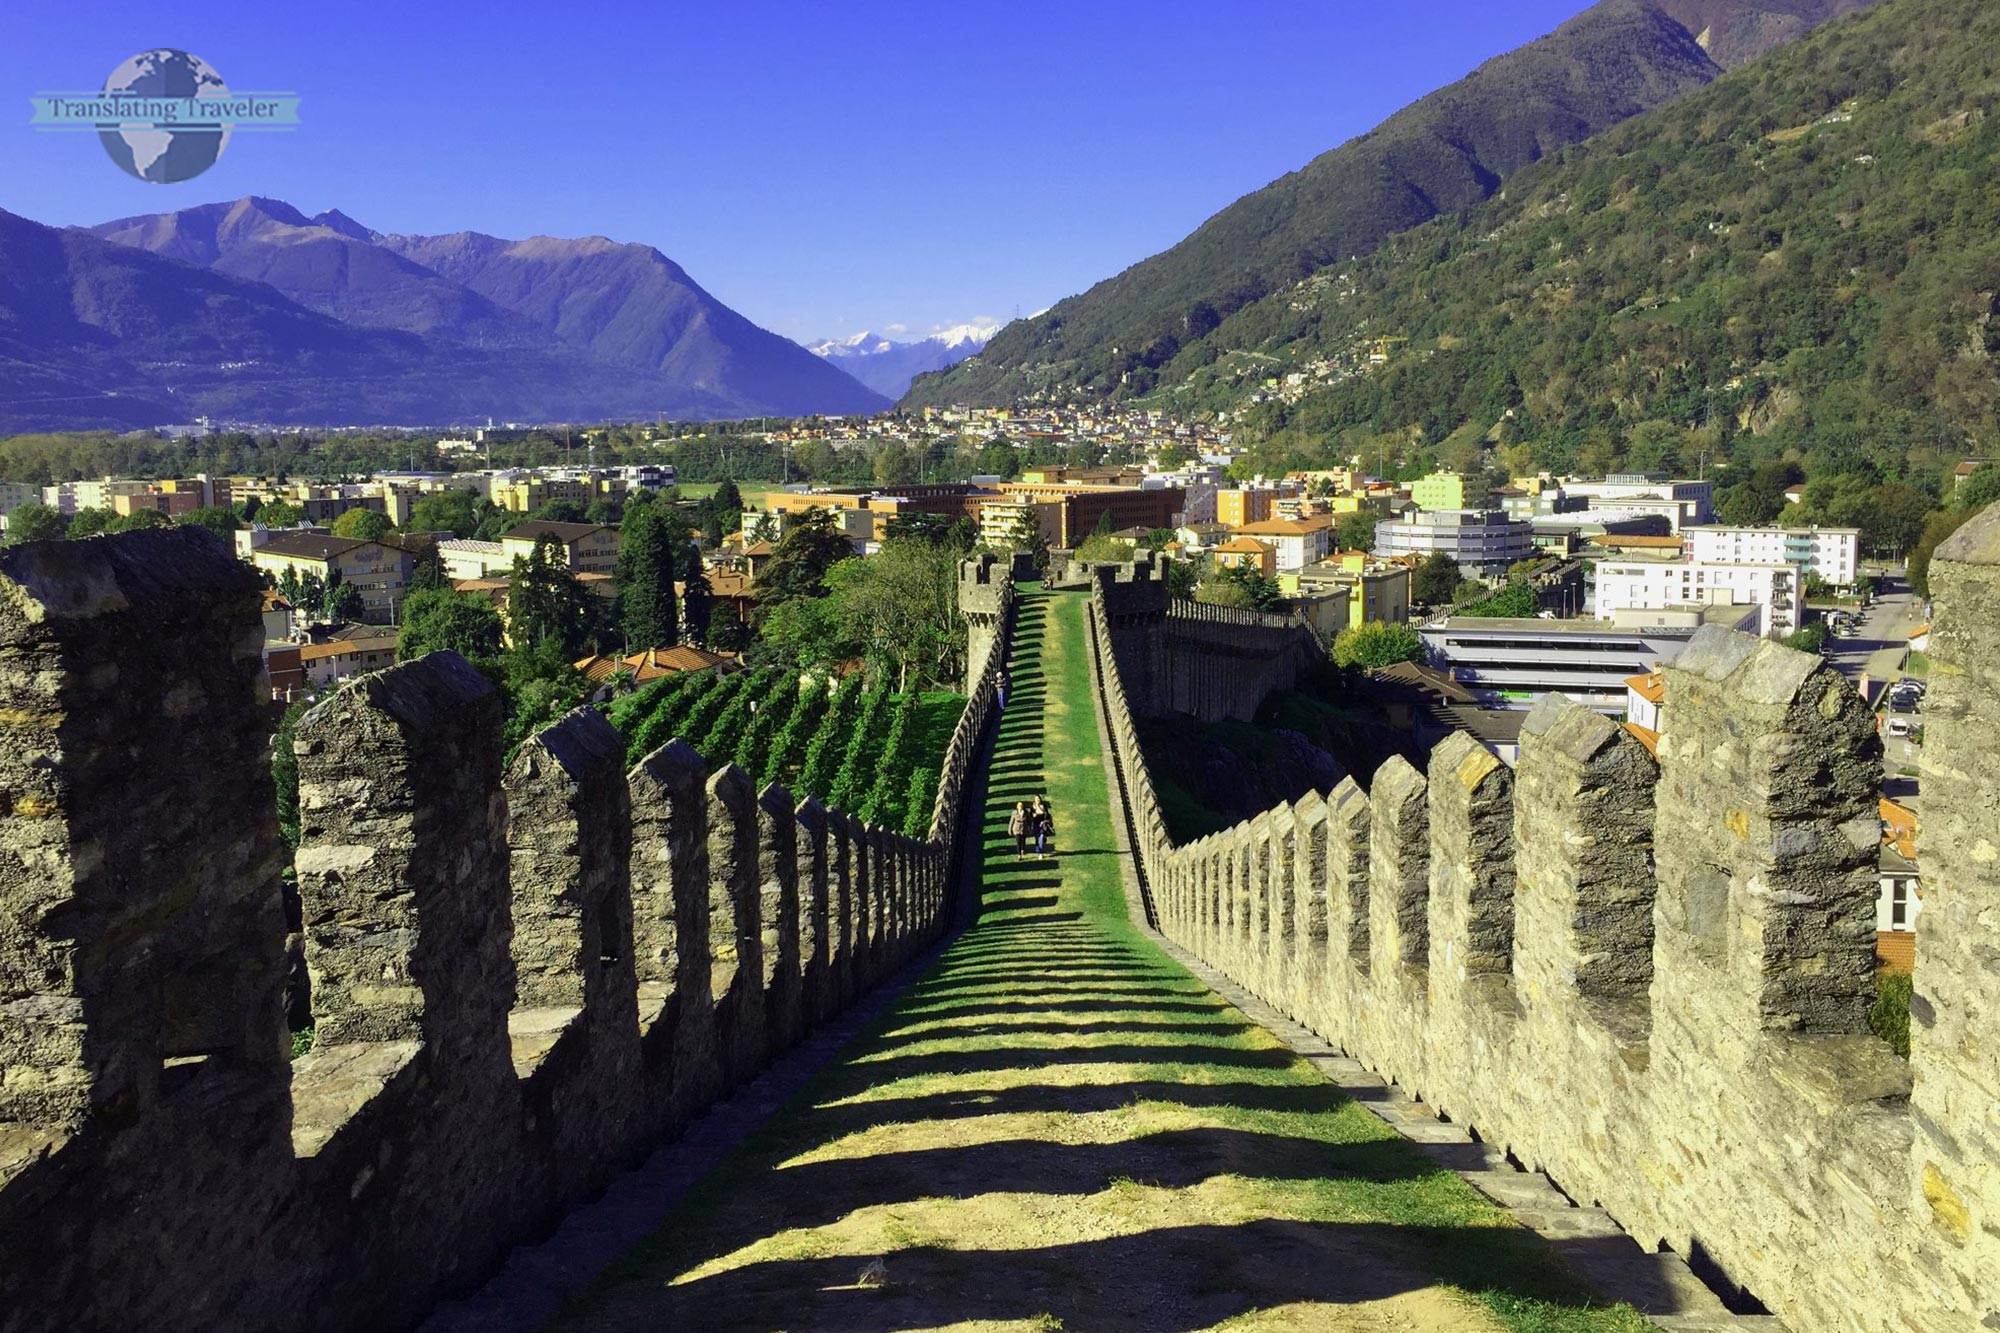 Fortified walls of Castelgrande, Italy